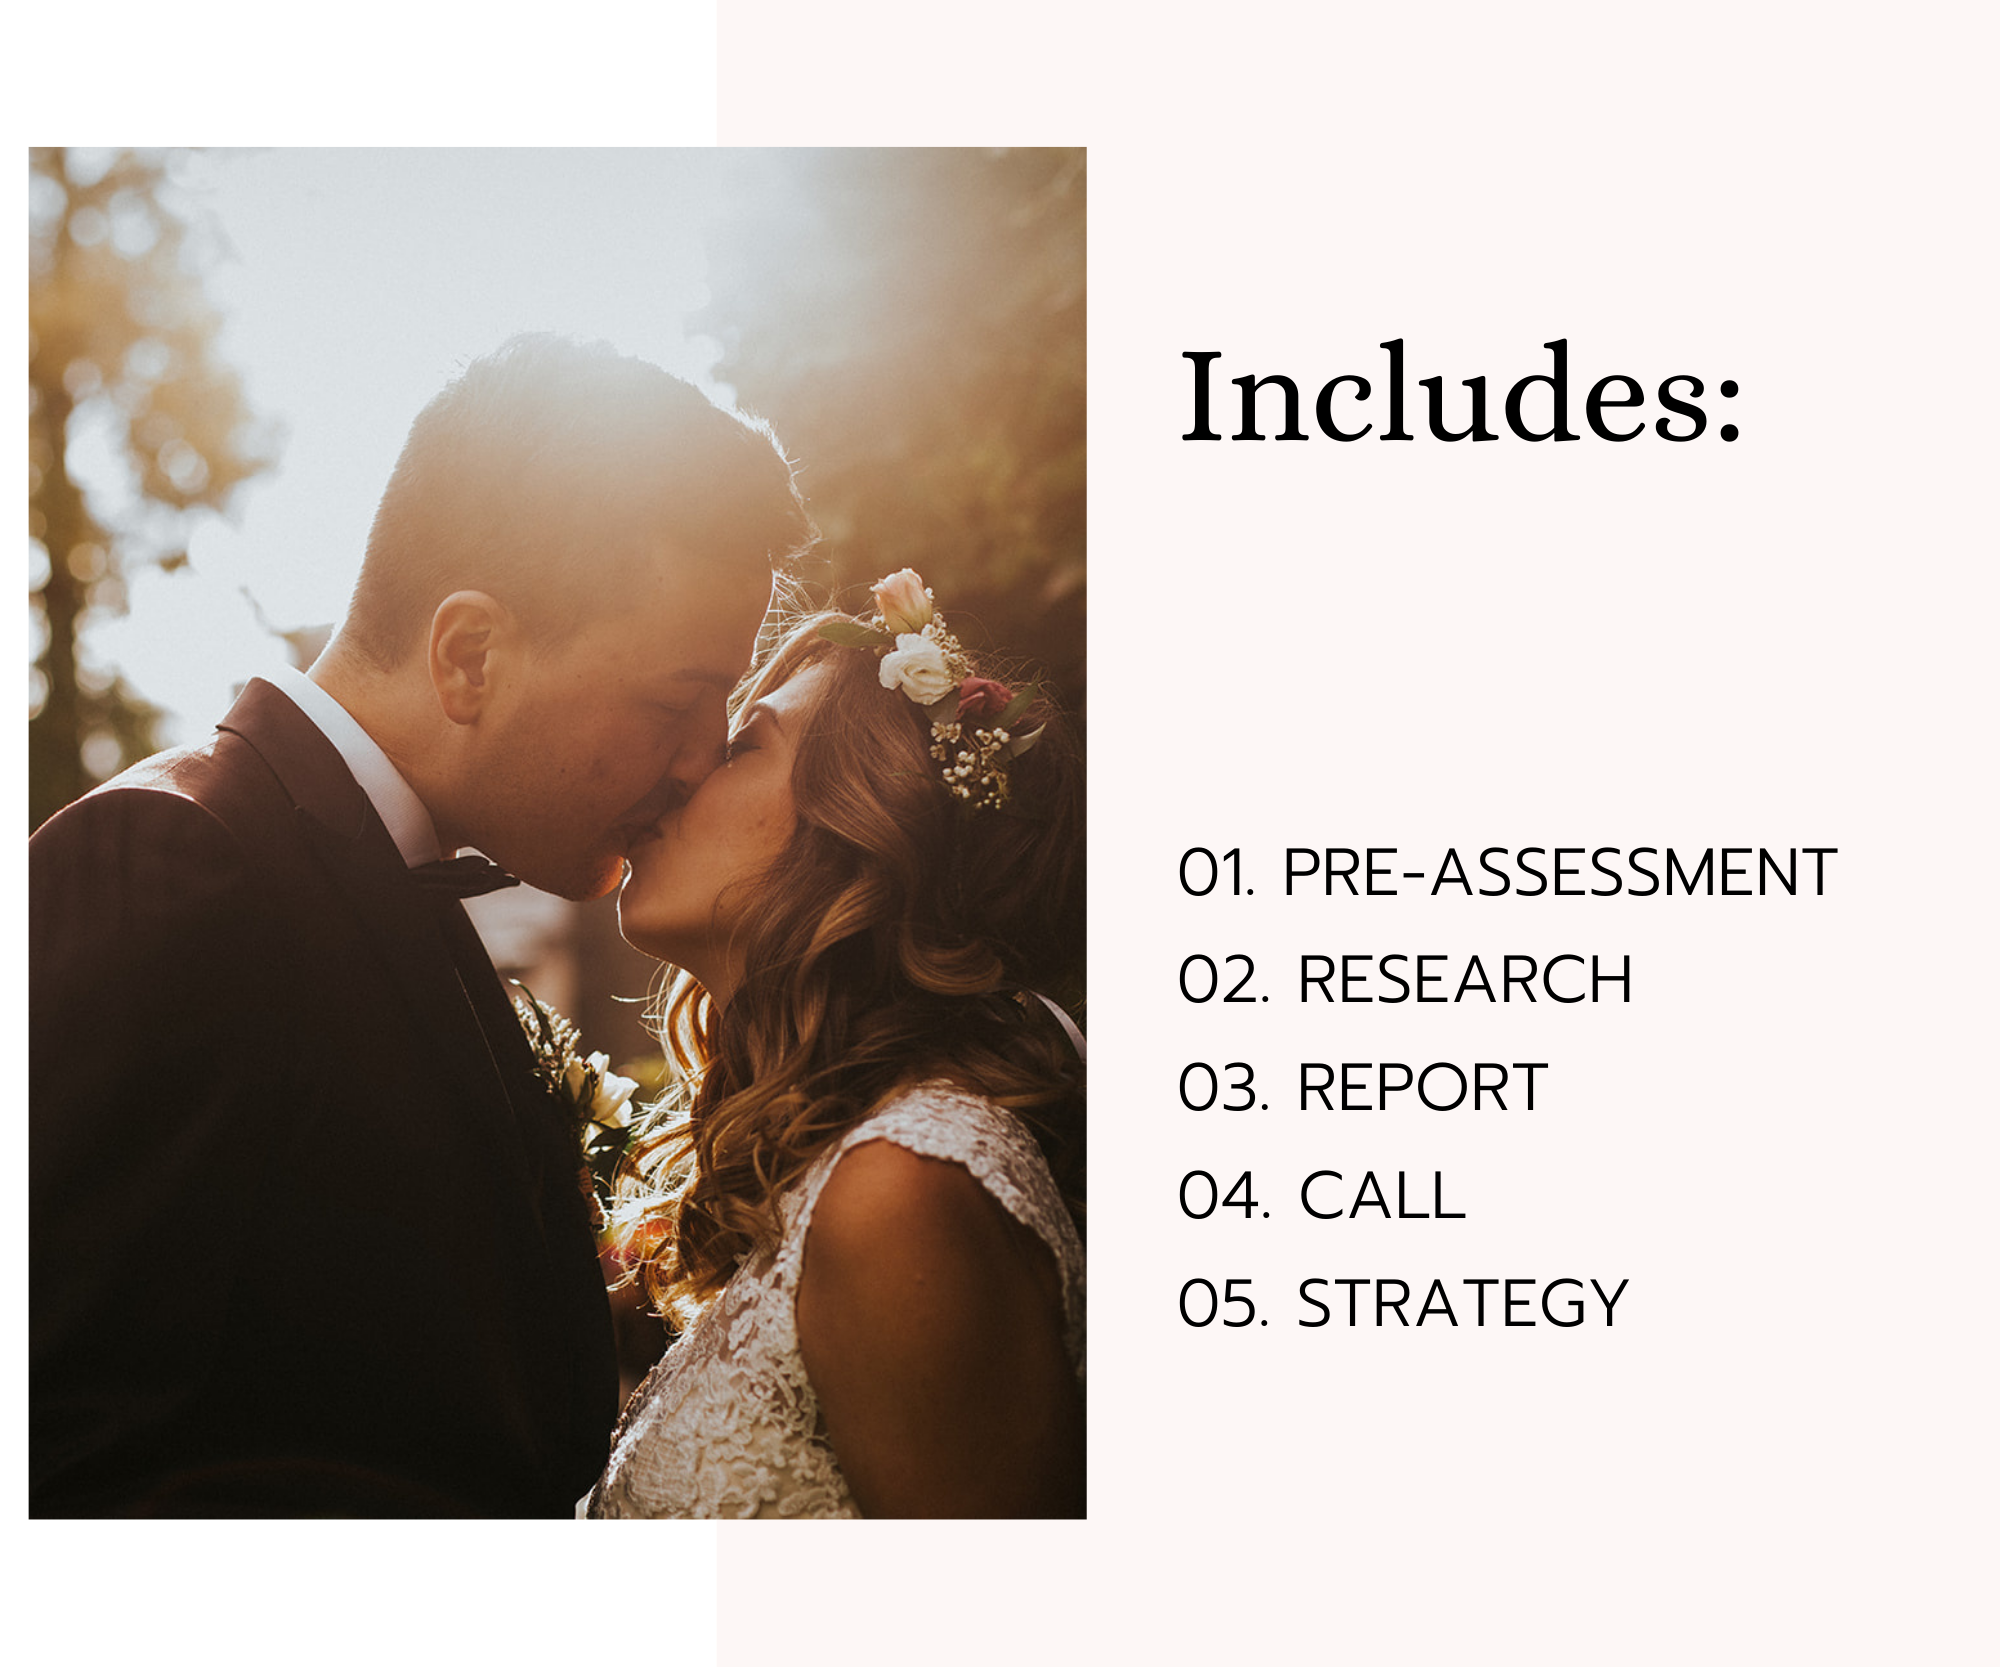 wedding photography mentoring, wedding photography courses online